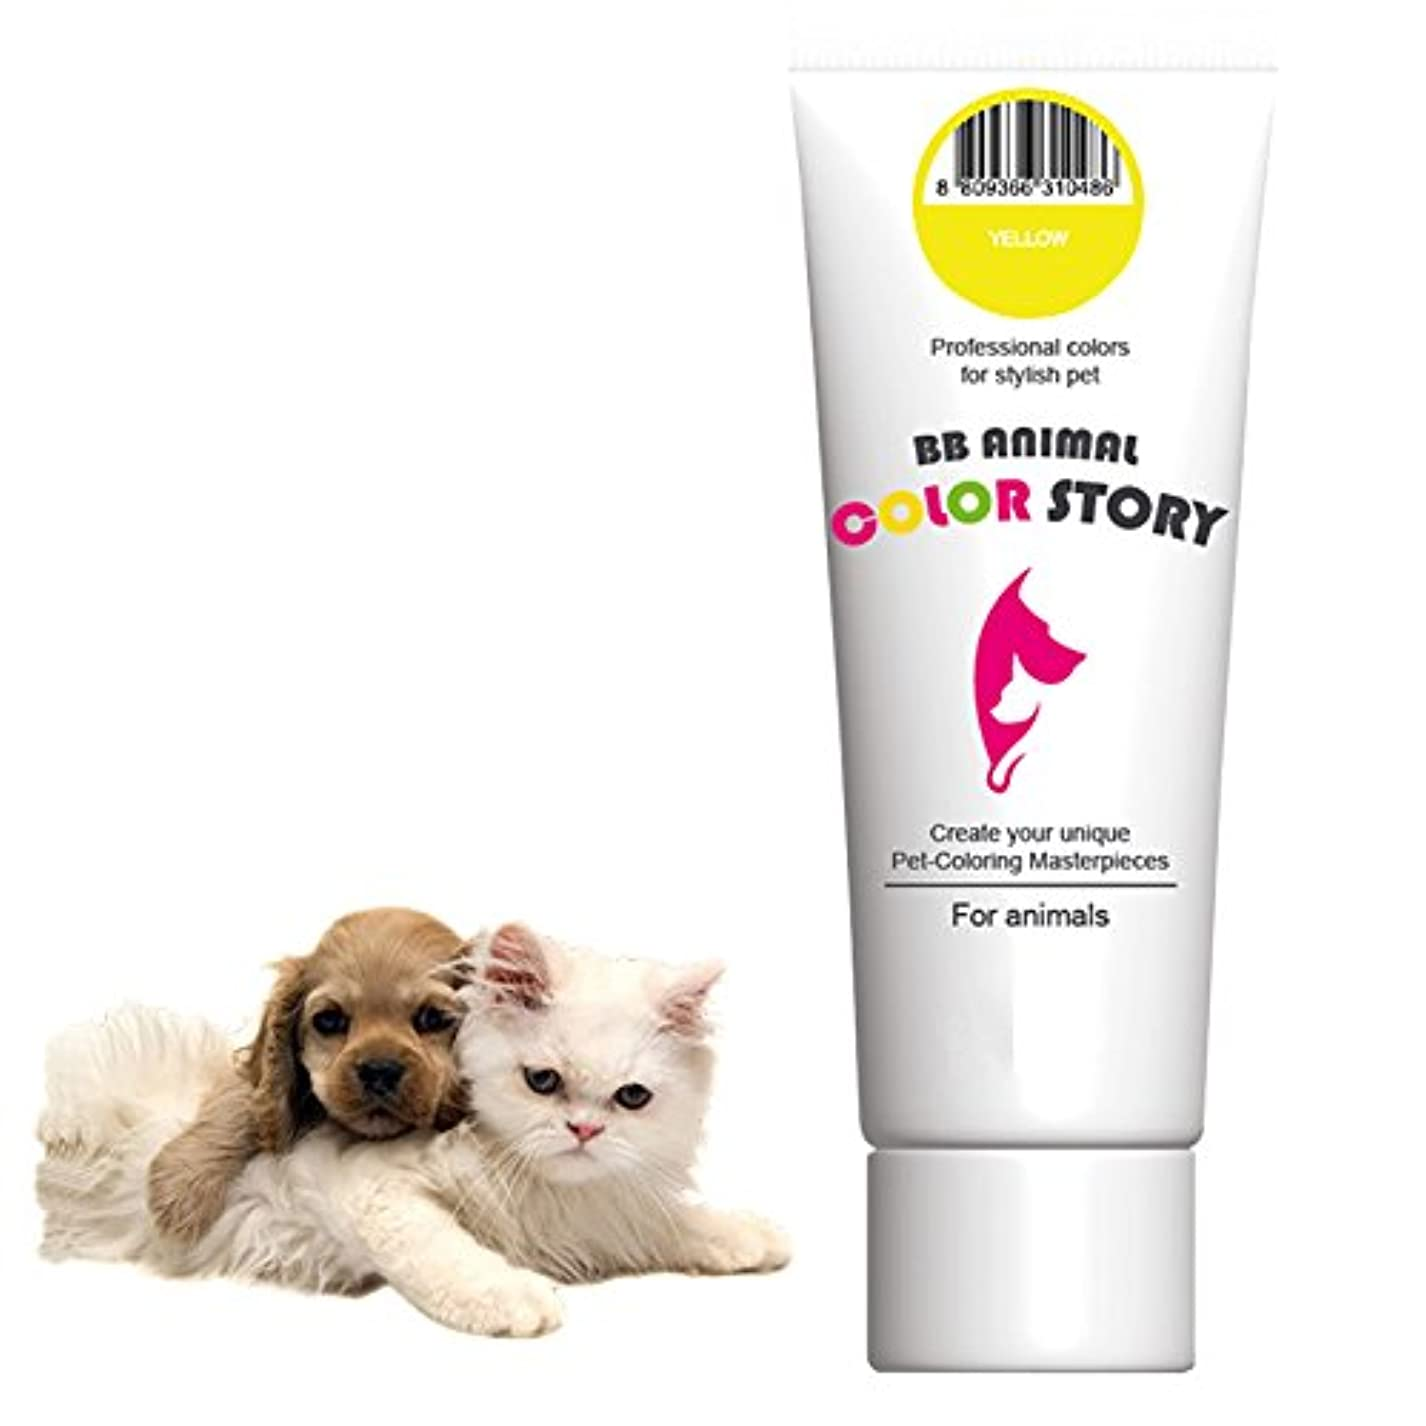 年金組み合わせる芽毛染め, 犬ヘアダイ Yellow カラーリング Dog Hair Hair Bleach Dye Hair Coloring Professional Colors for Stylish Pet 50ml 並行輸入